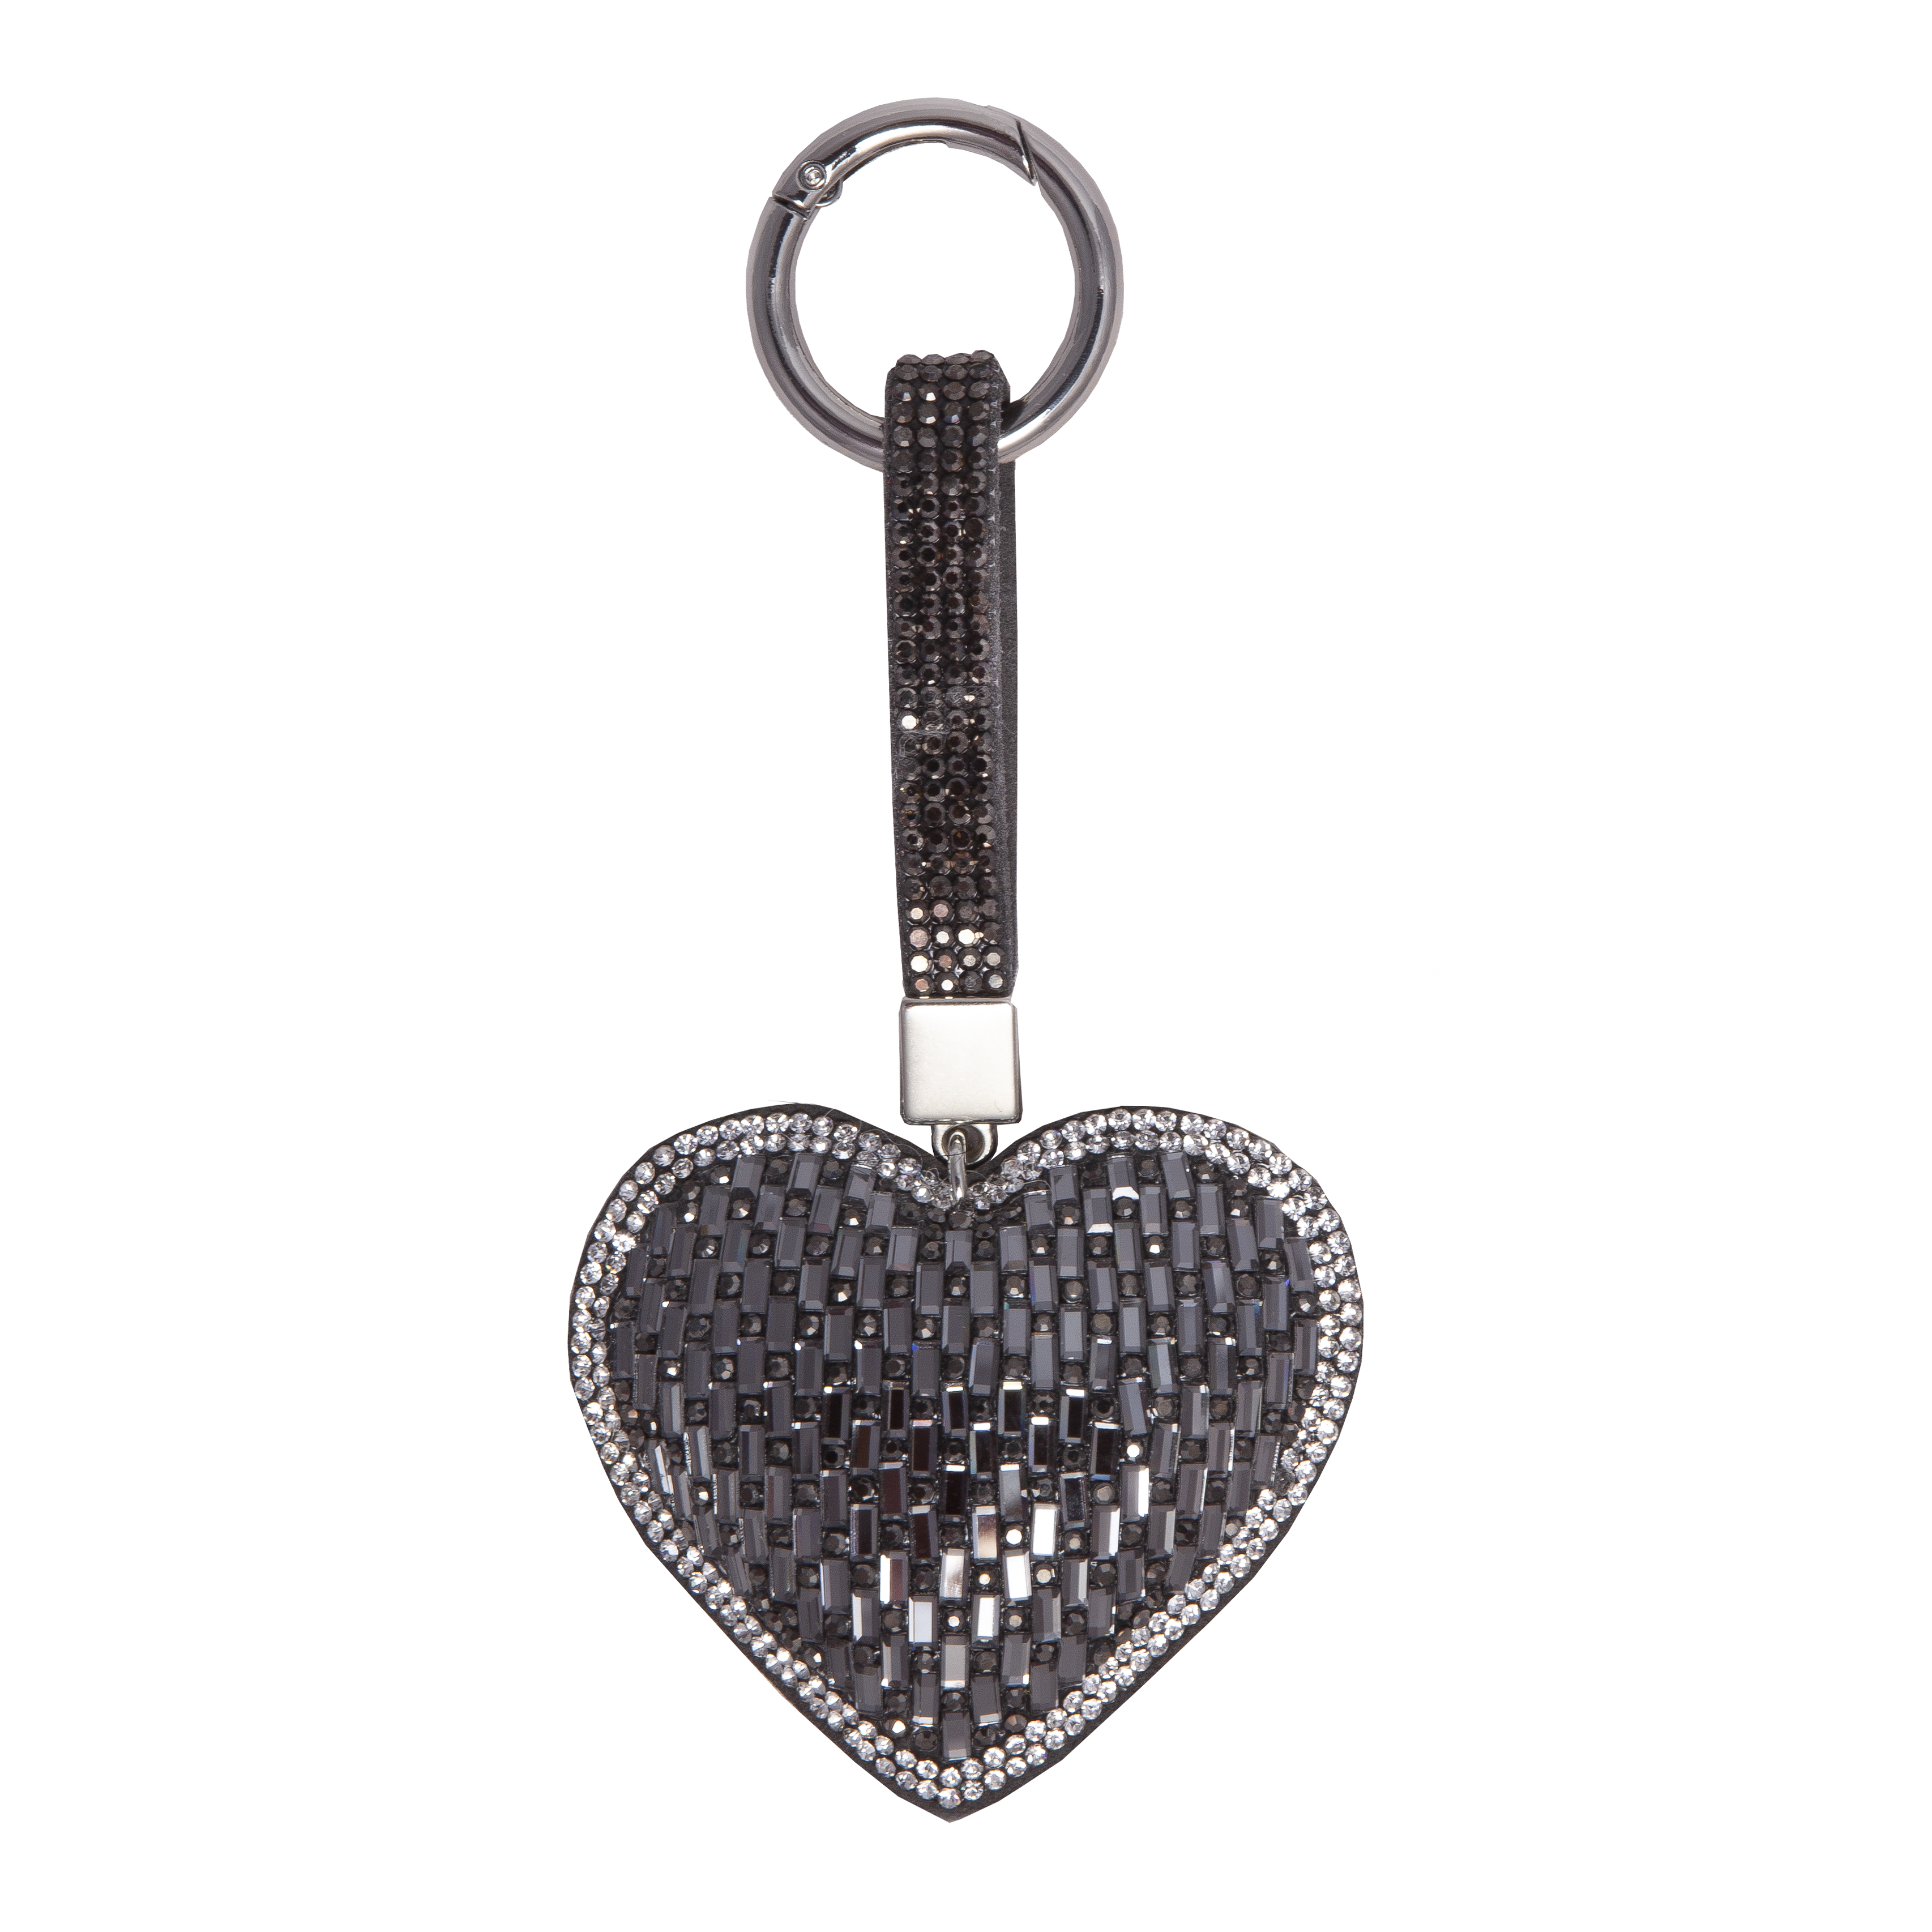 Rose Gold - Gun Metal Grey - Silver Key Fob